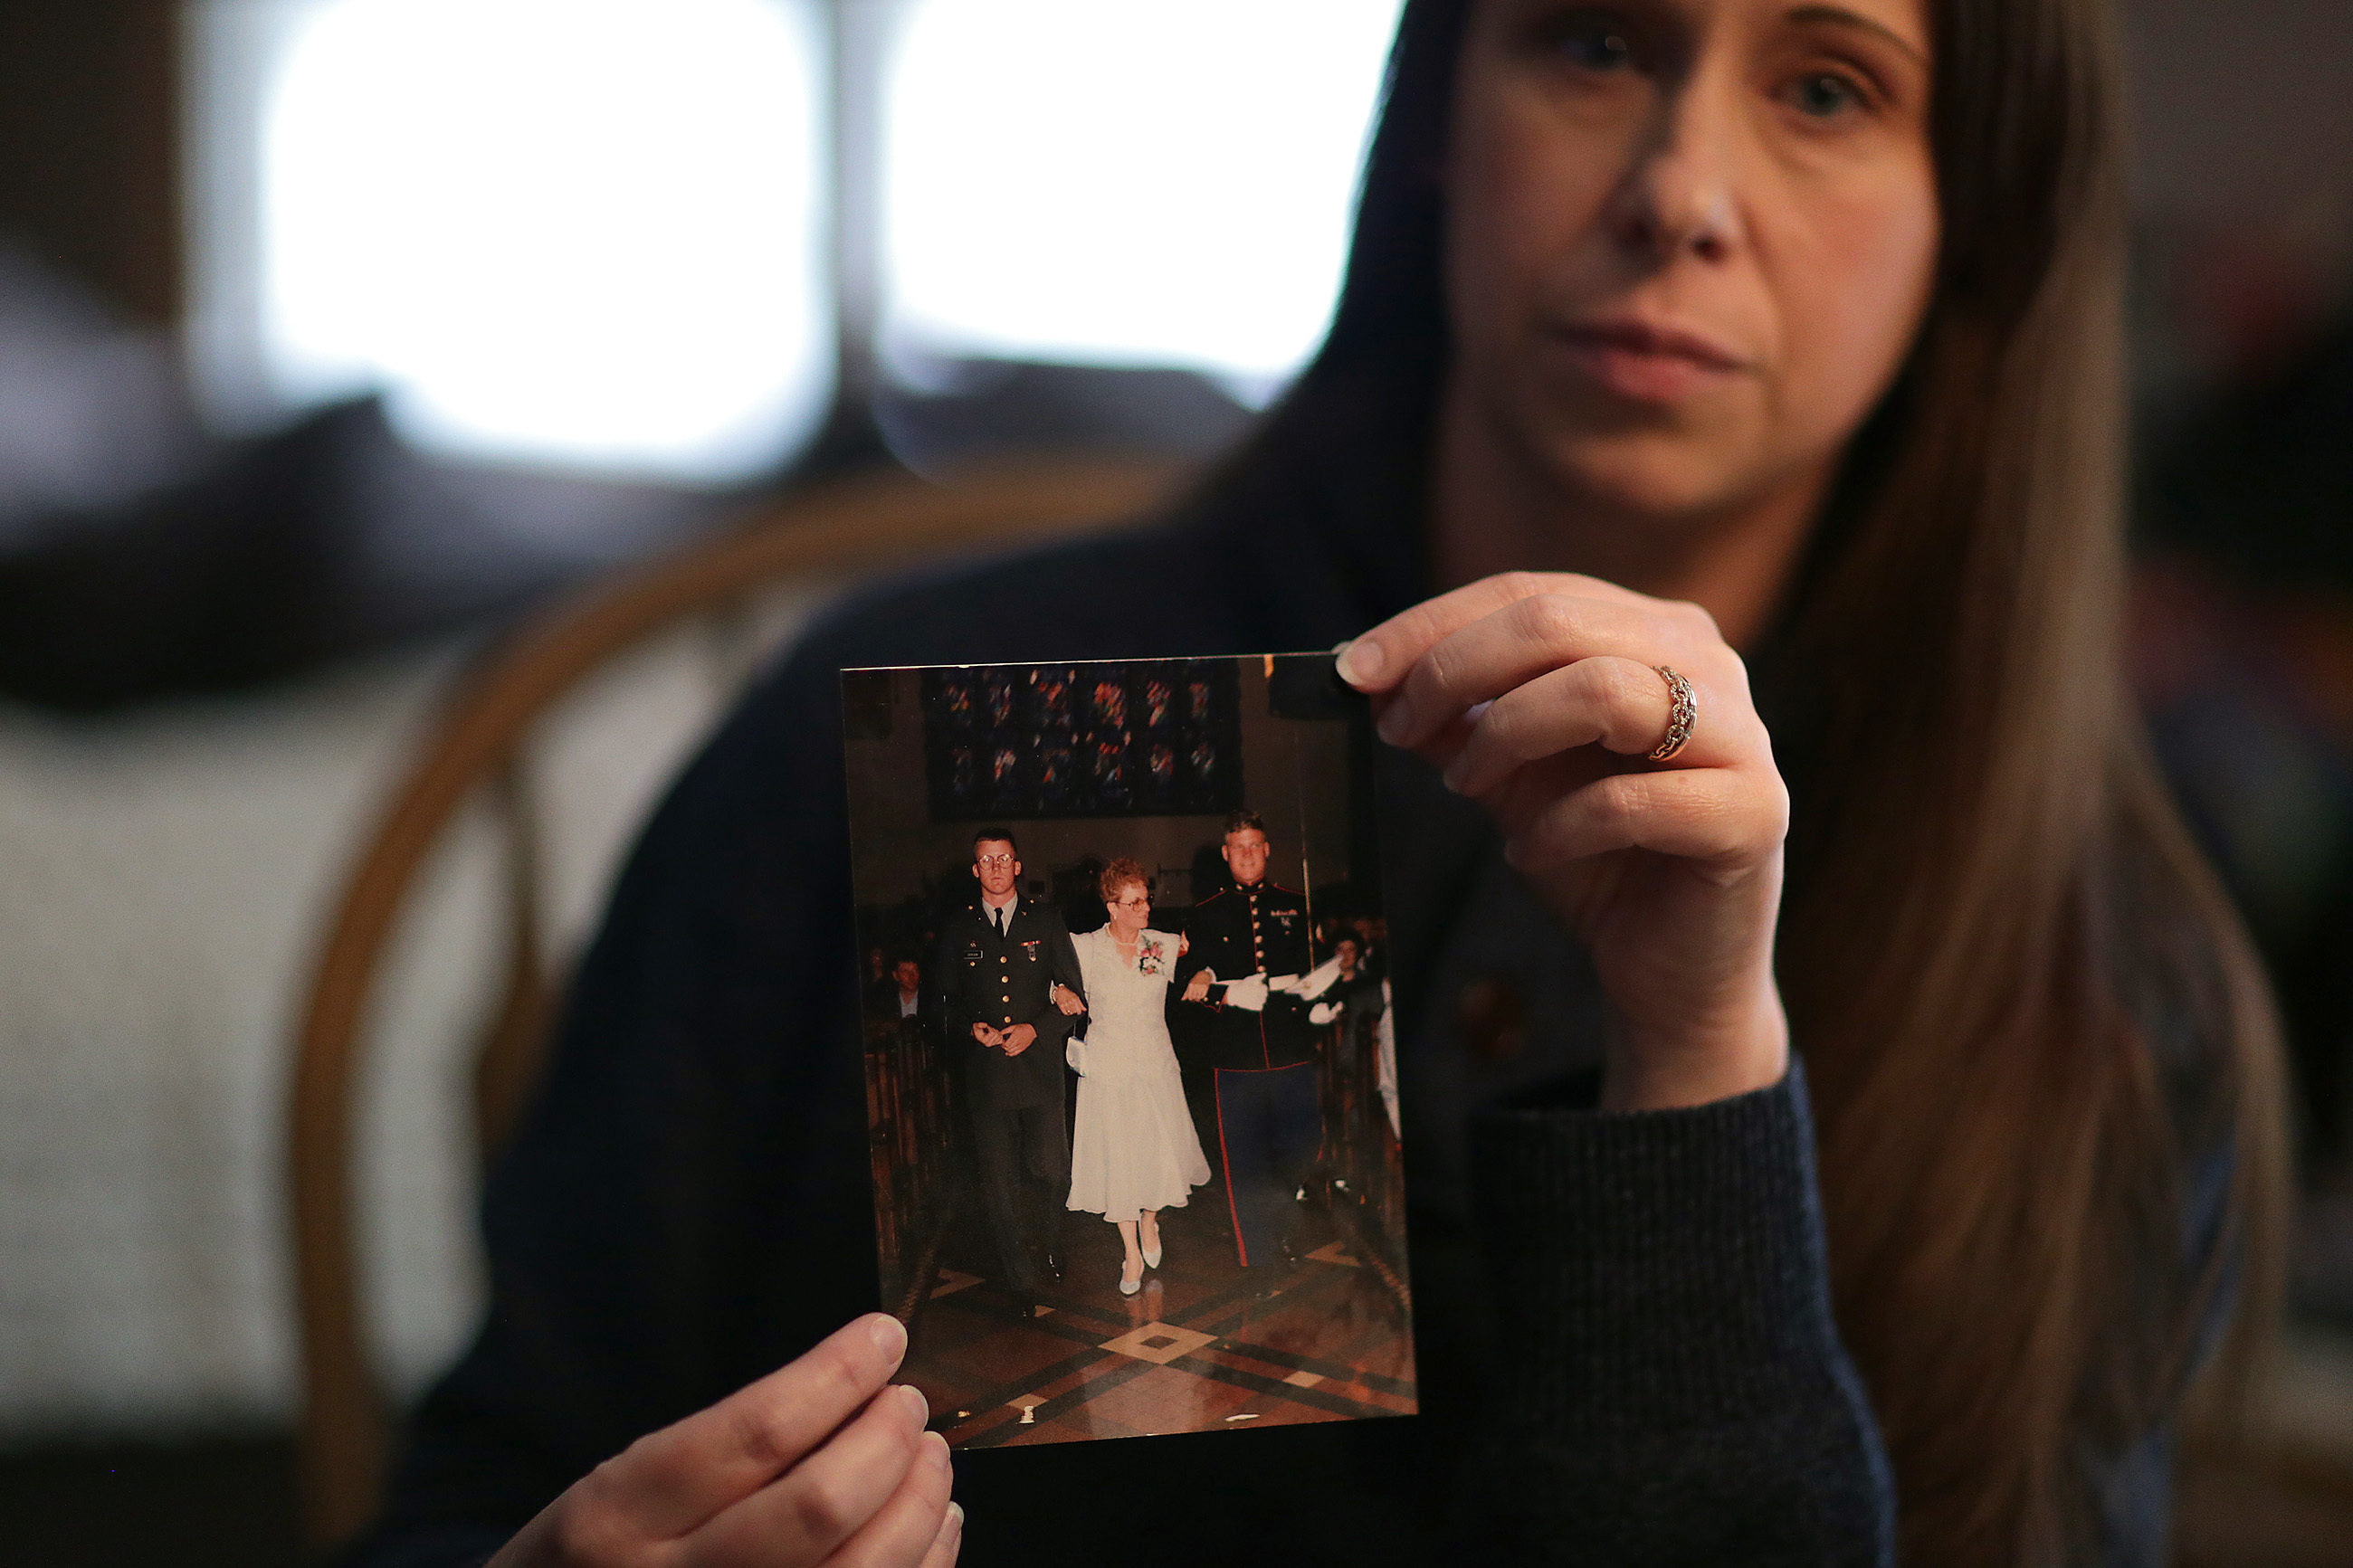 Courtney Bracken holds a family photo of her deceased boyfriend, Robert Dickson, at left in the photo, in Mantua NJ on March 1, 2018. Robert died of a heroin overdose in the Kensington section of Philadelphia in December 2017. In the family photo are Robert, his mother, Pat, and brother, Billy. He was found overdosed in a Kensington breezeway with only an army tattoo to help investigators eventually identify him.